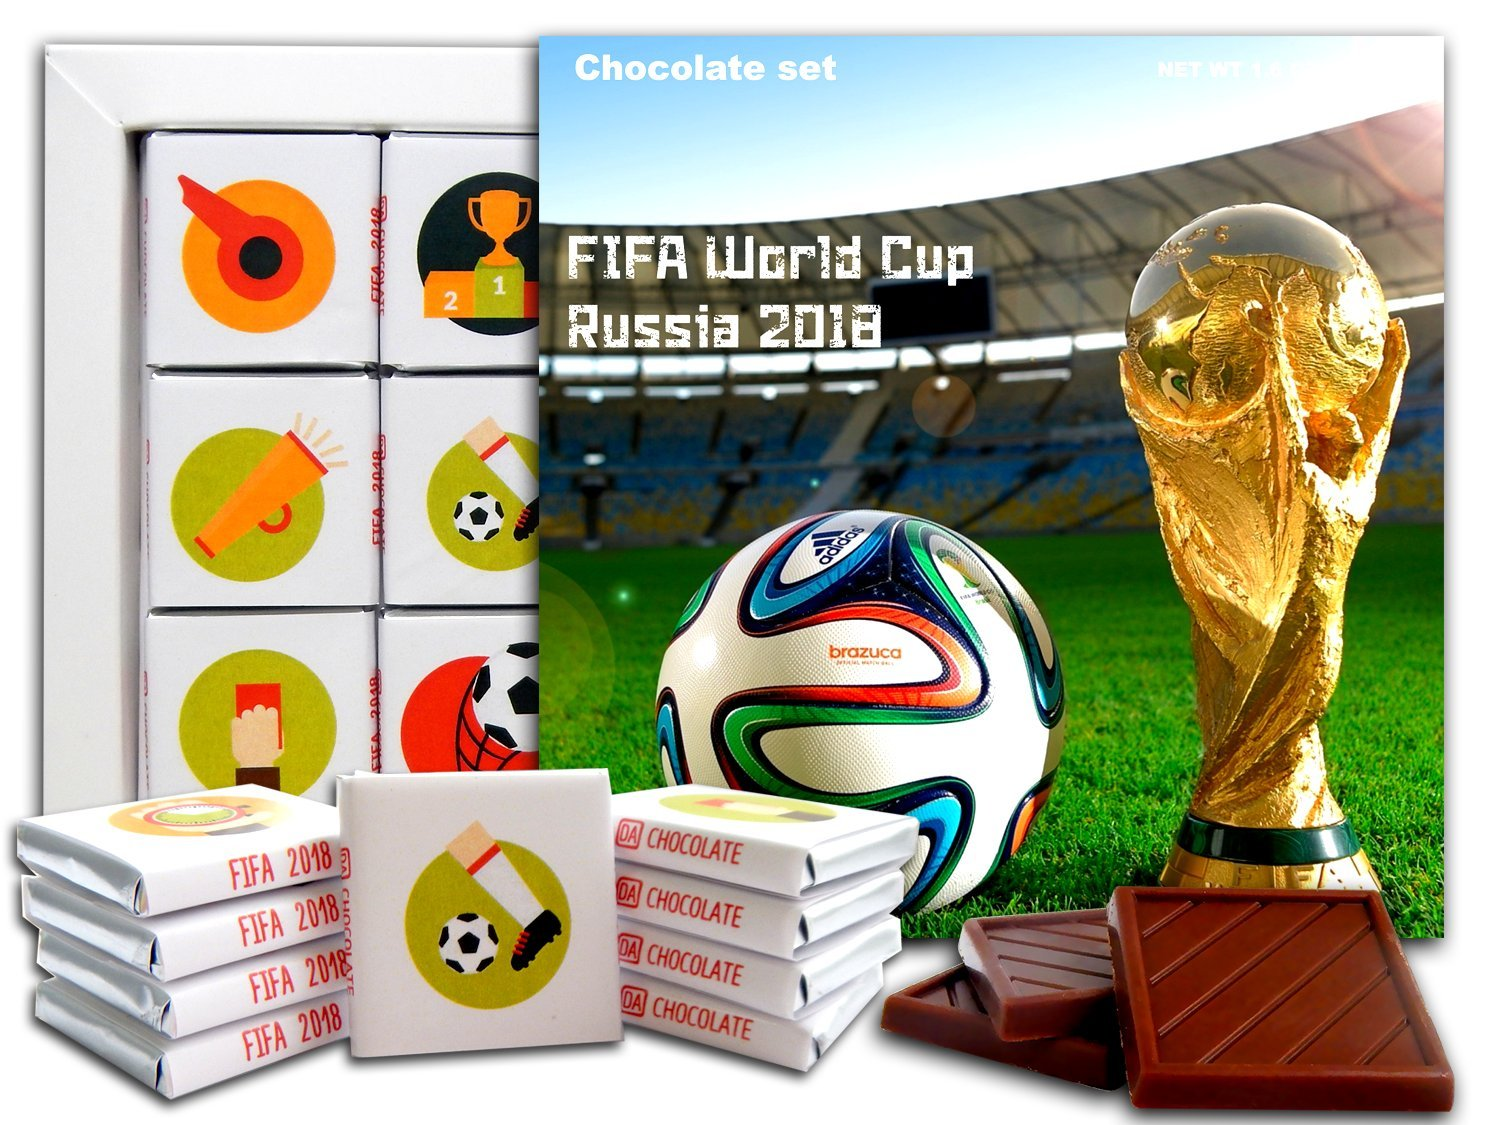 b158f4d4835 Amazon.com   DA CHOCOLATE Candy Souvenir FIFA WORLD CUP RUSSIA 2018  Chocolate Gift Set 5x5in 1 box (Cup)   Grocery   Gourmet Food